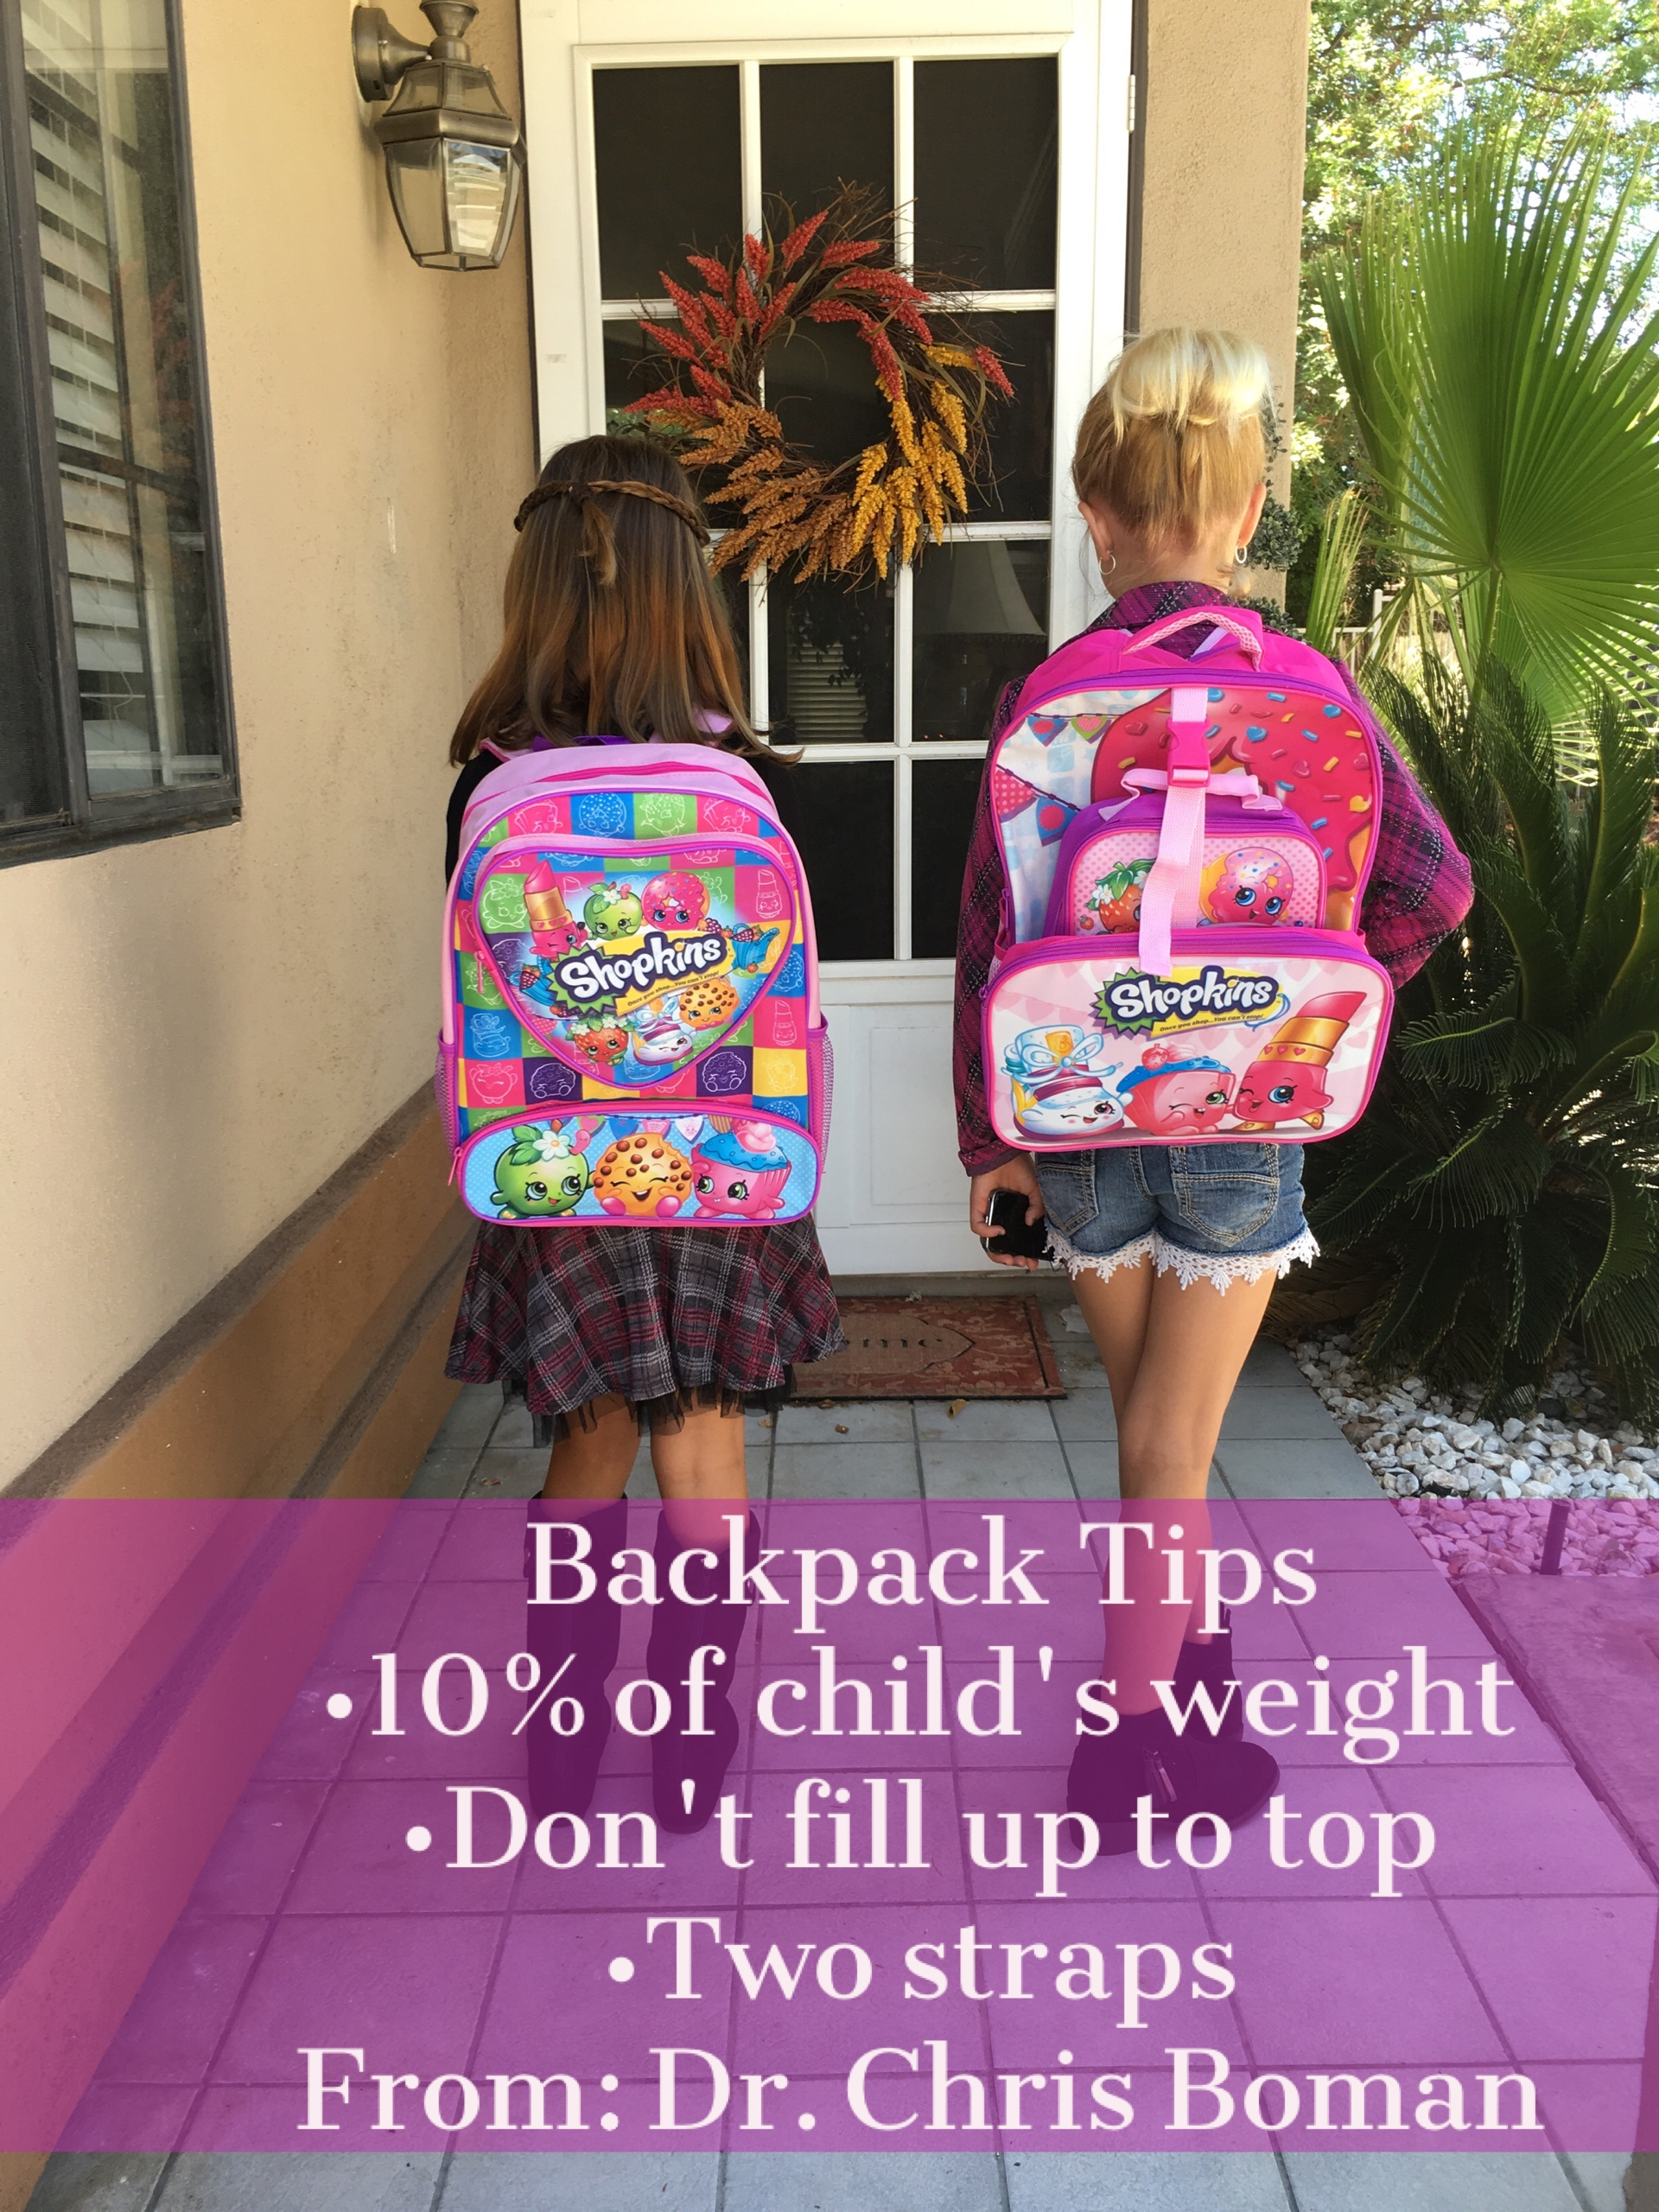 Backpack safety tips